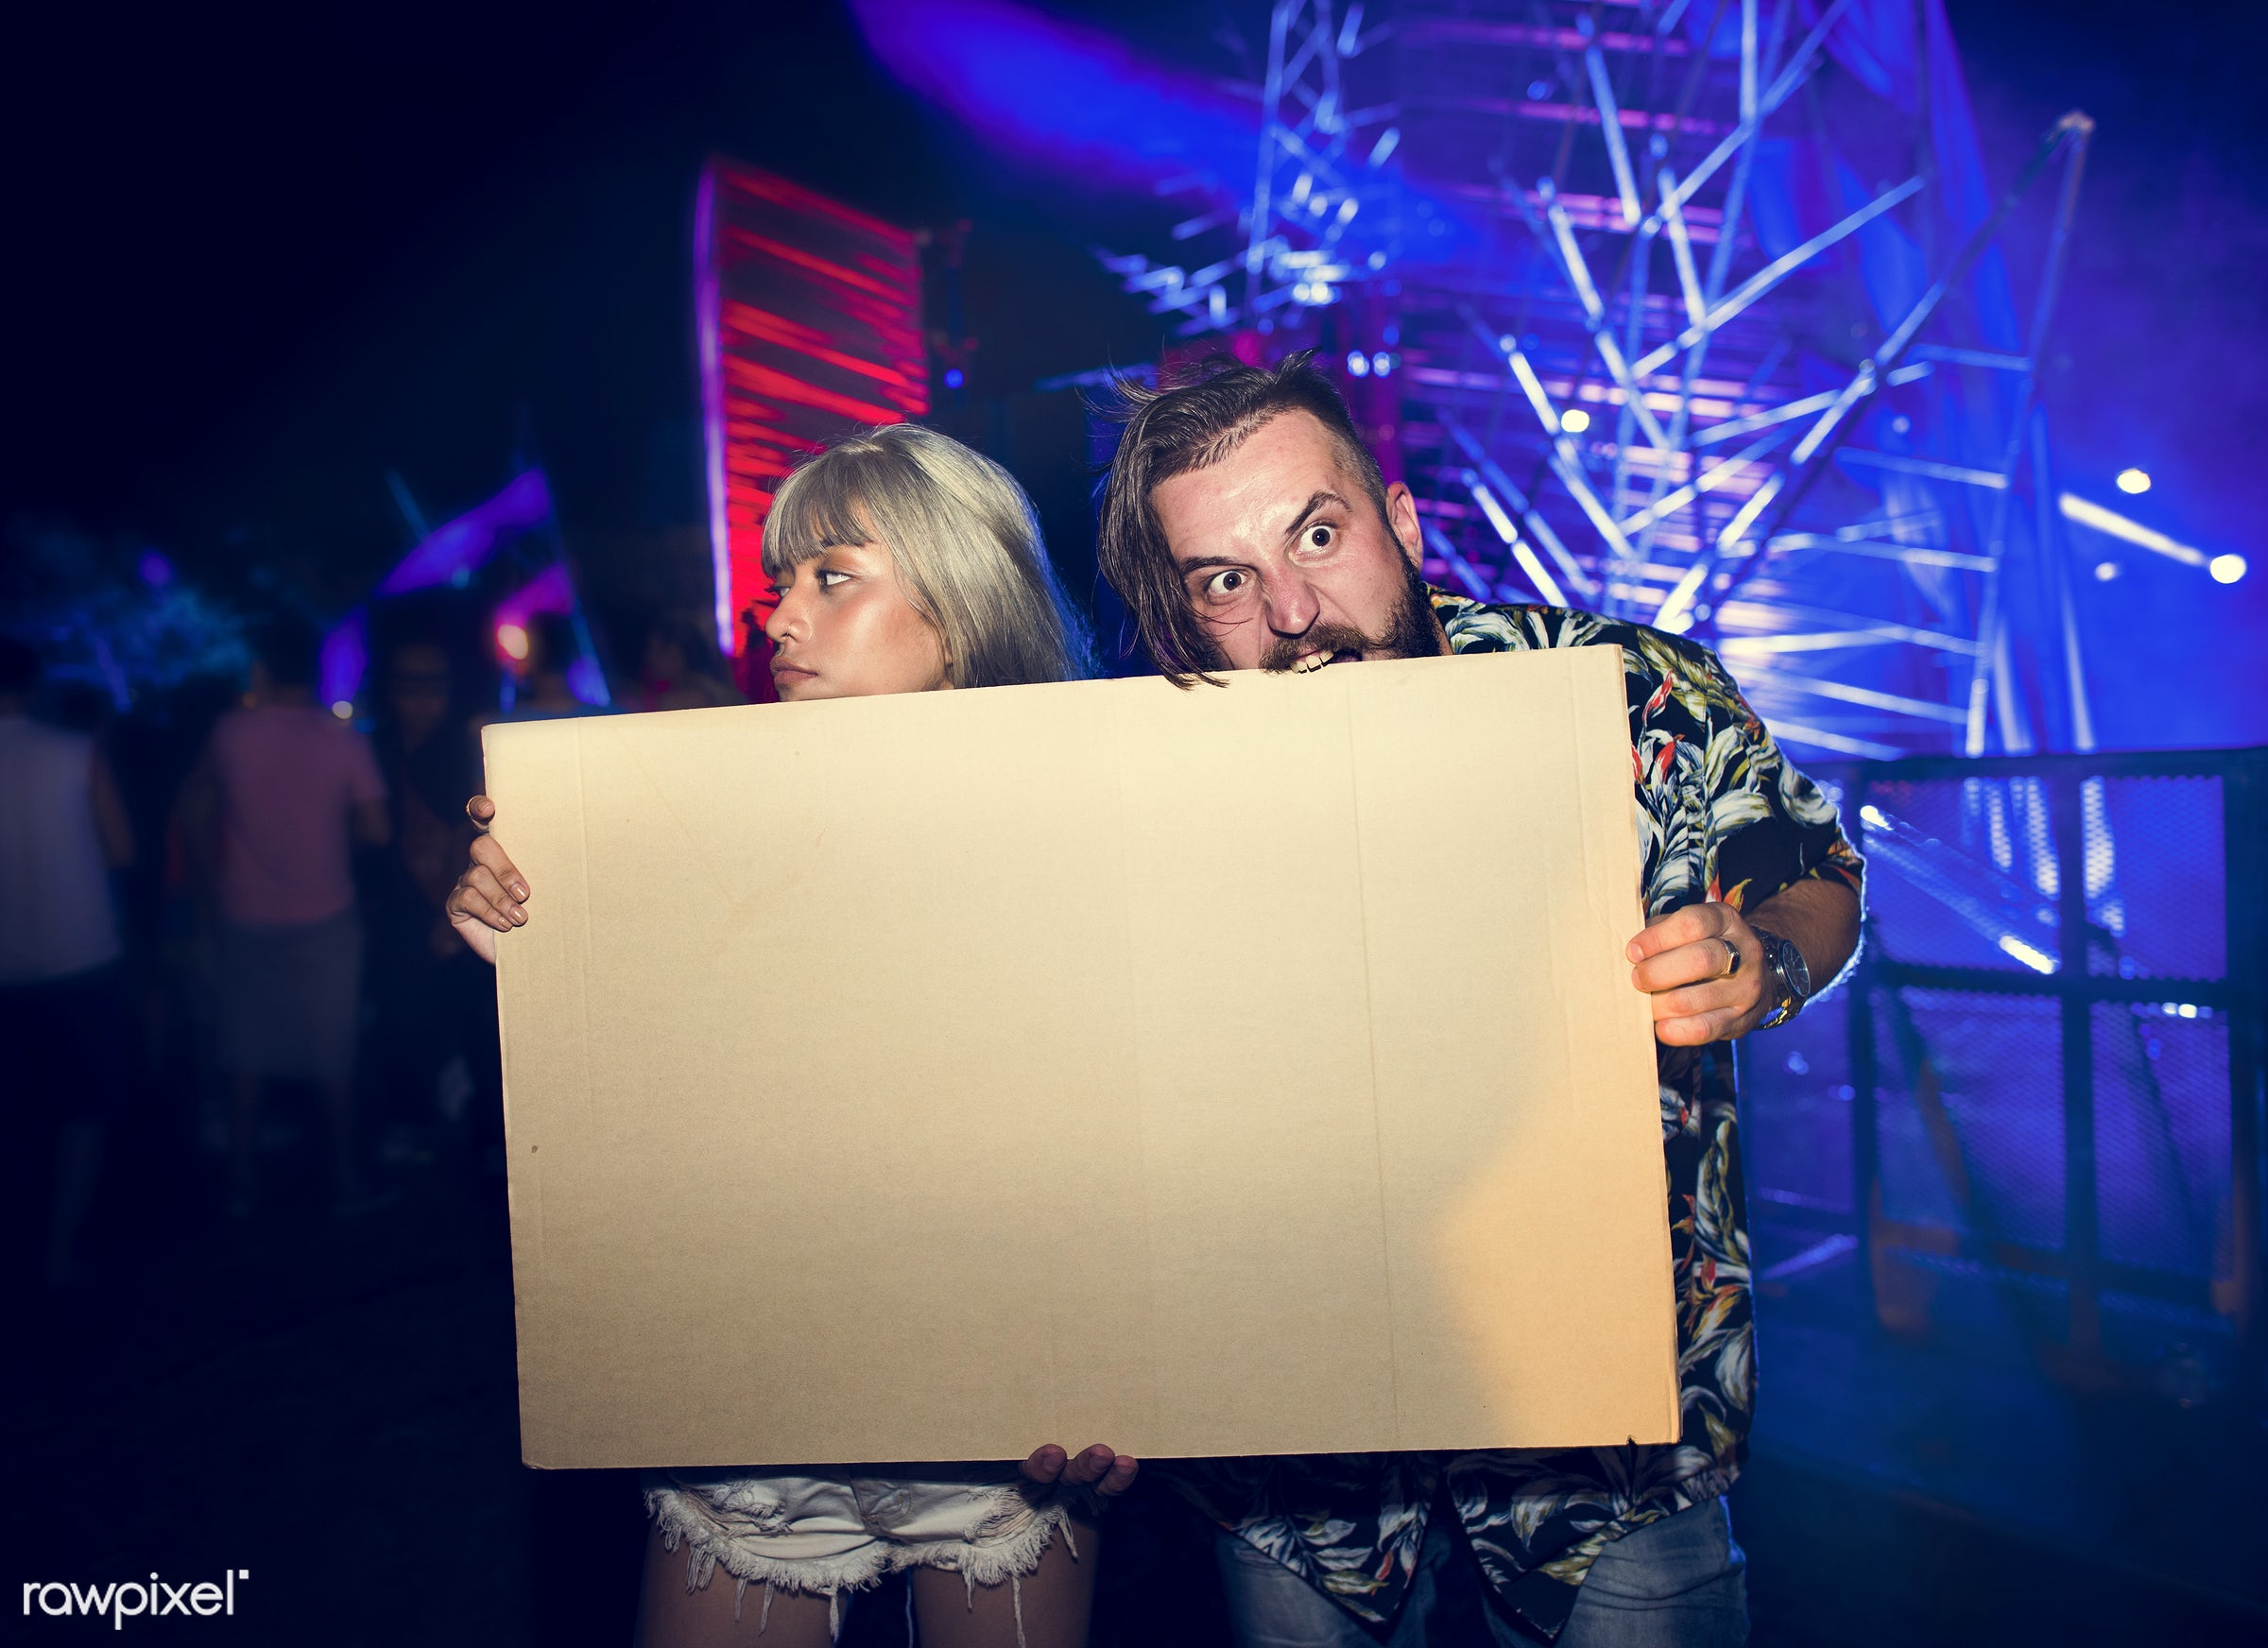 concert, person, holding, show, party, people, together, placard, friends, woman, event, lifestyle, empty, friendship,...